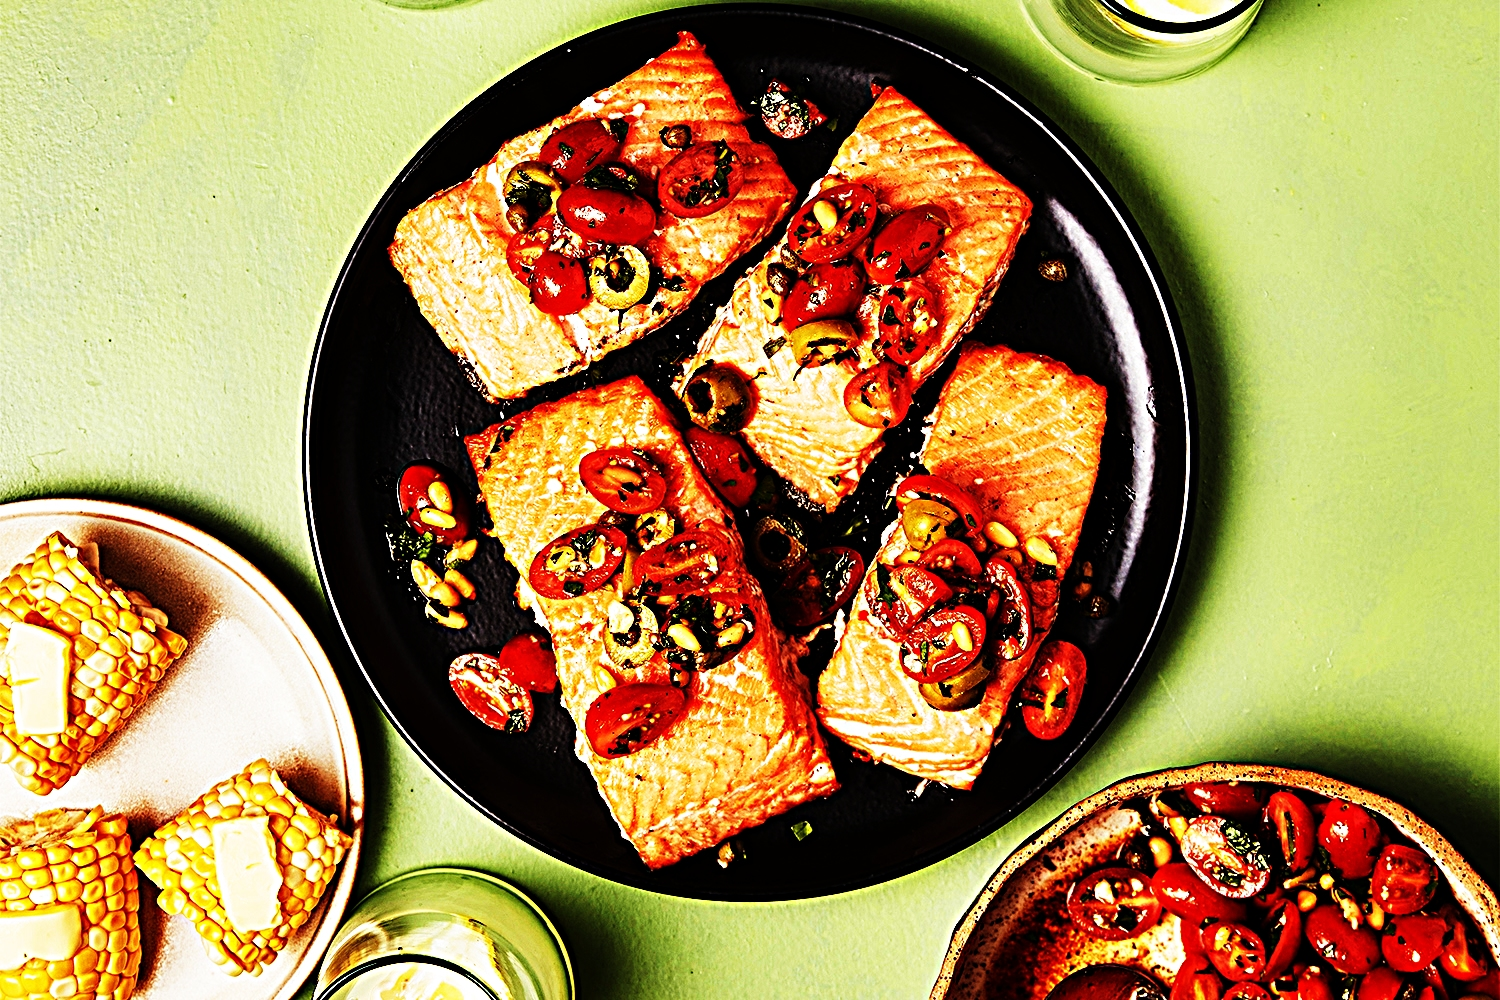 Stupid-Easy Recipe for Grilled Salmon with Speedy Tomato-Olive Relish (#1 Top-Rated)